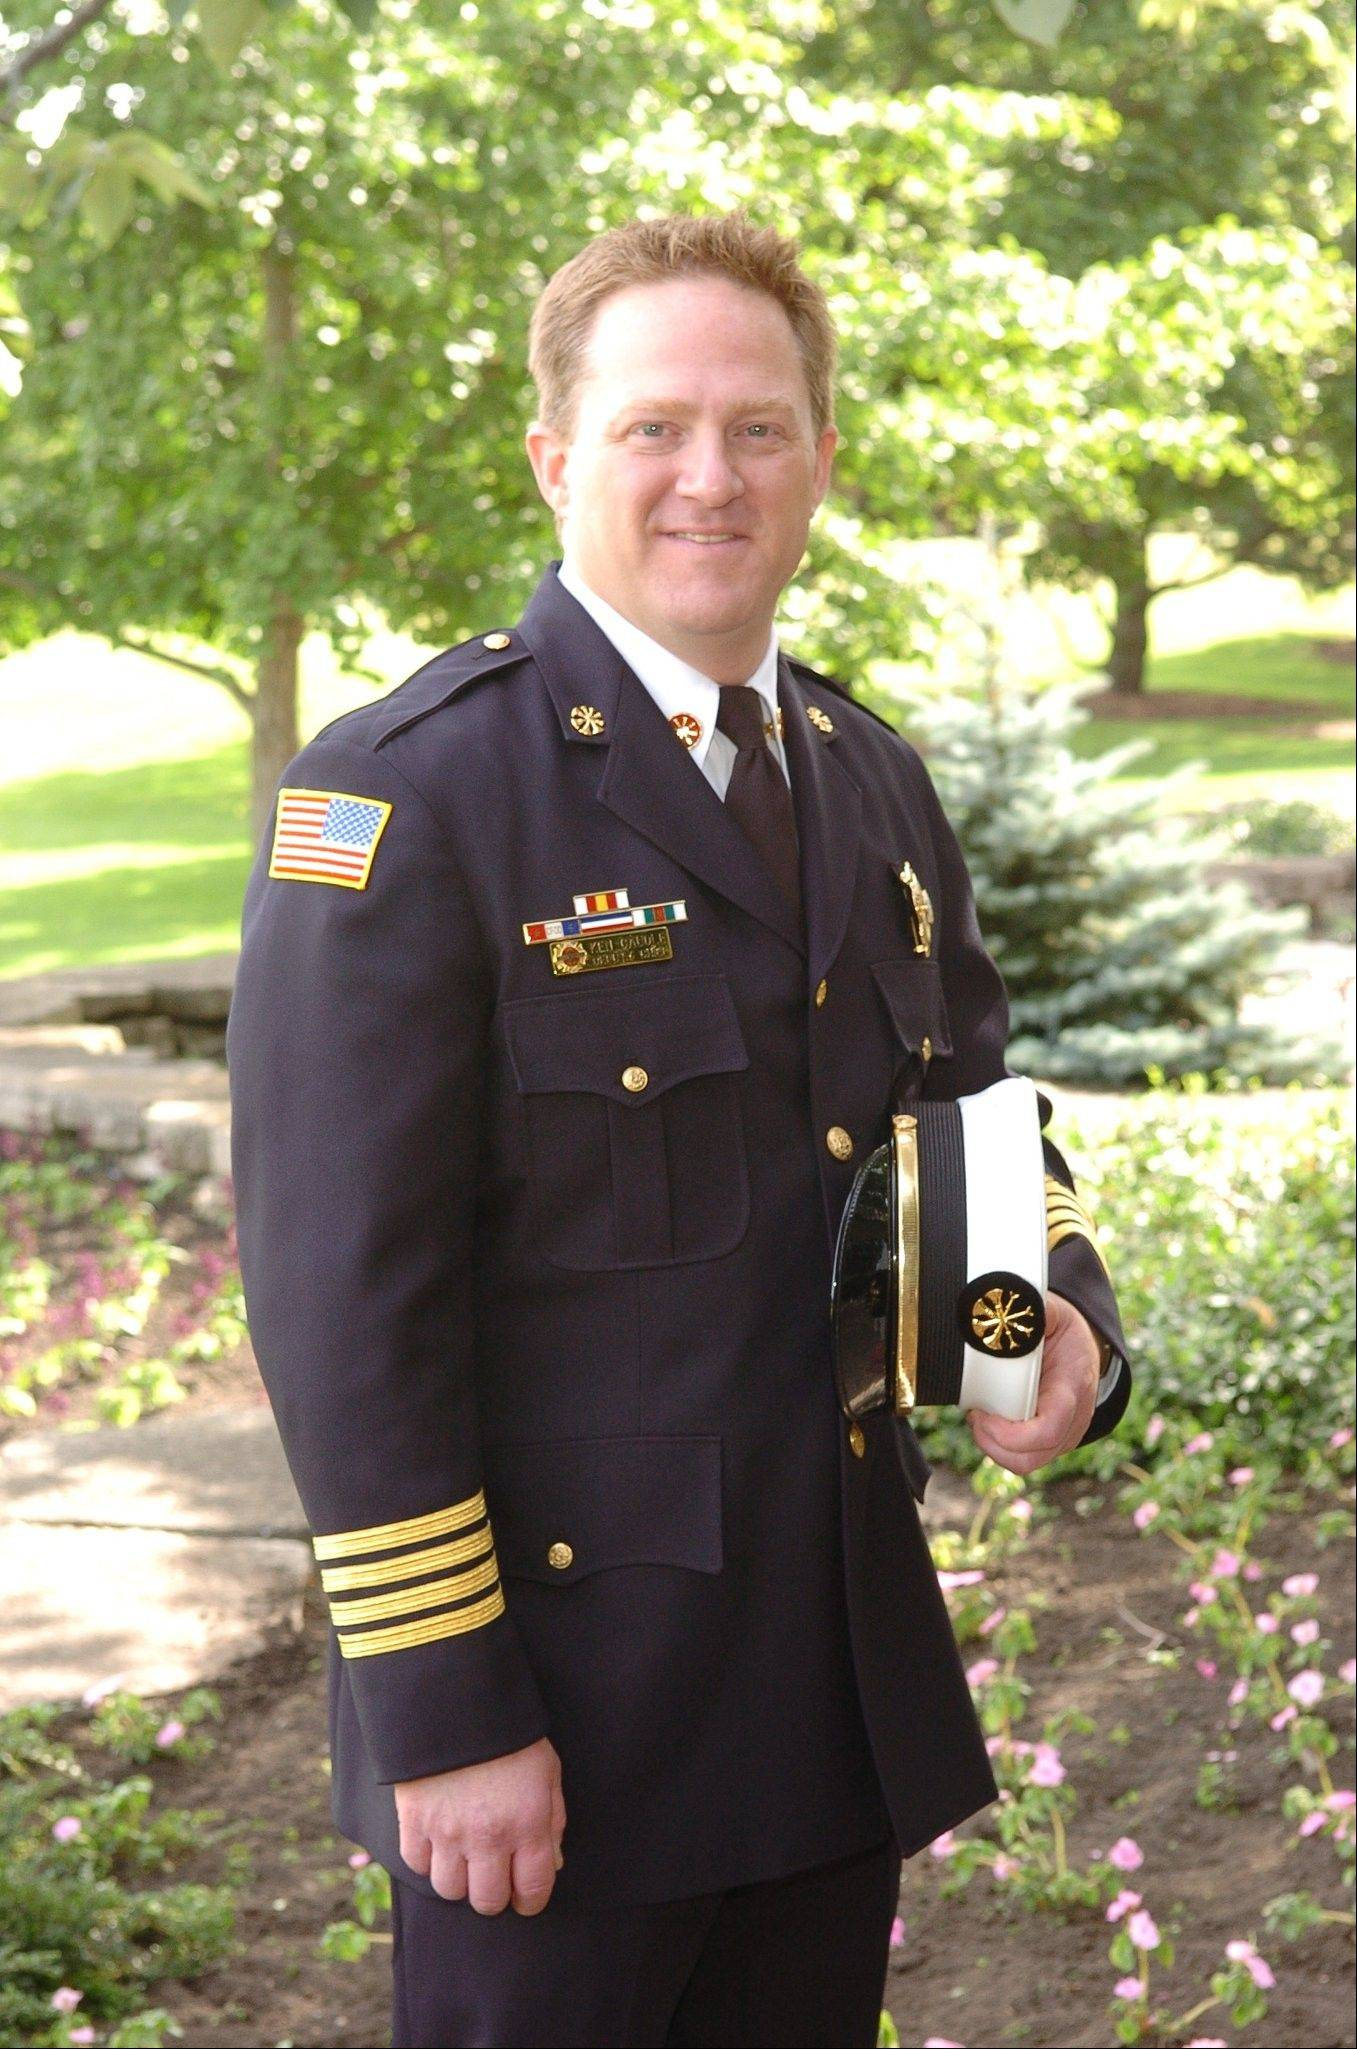 Ken Caudle has been named the Huntley Fire Protection District's new fire chief. He has been with the district for 13 years.